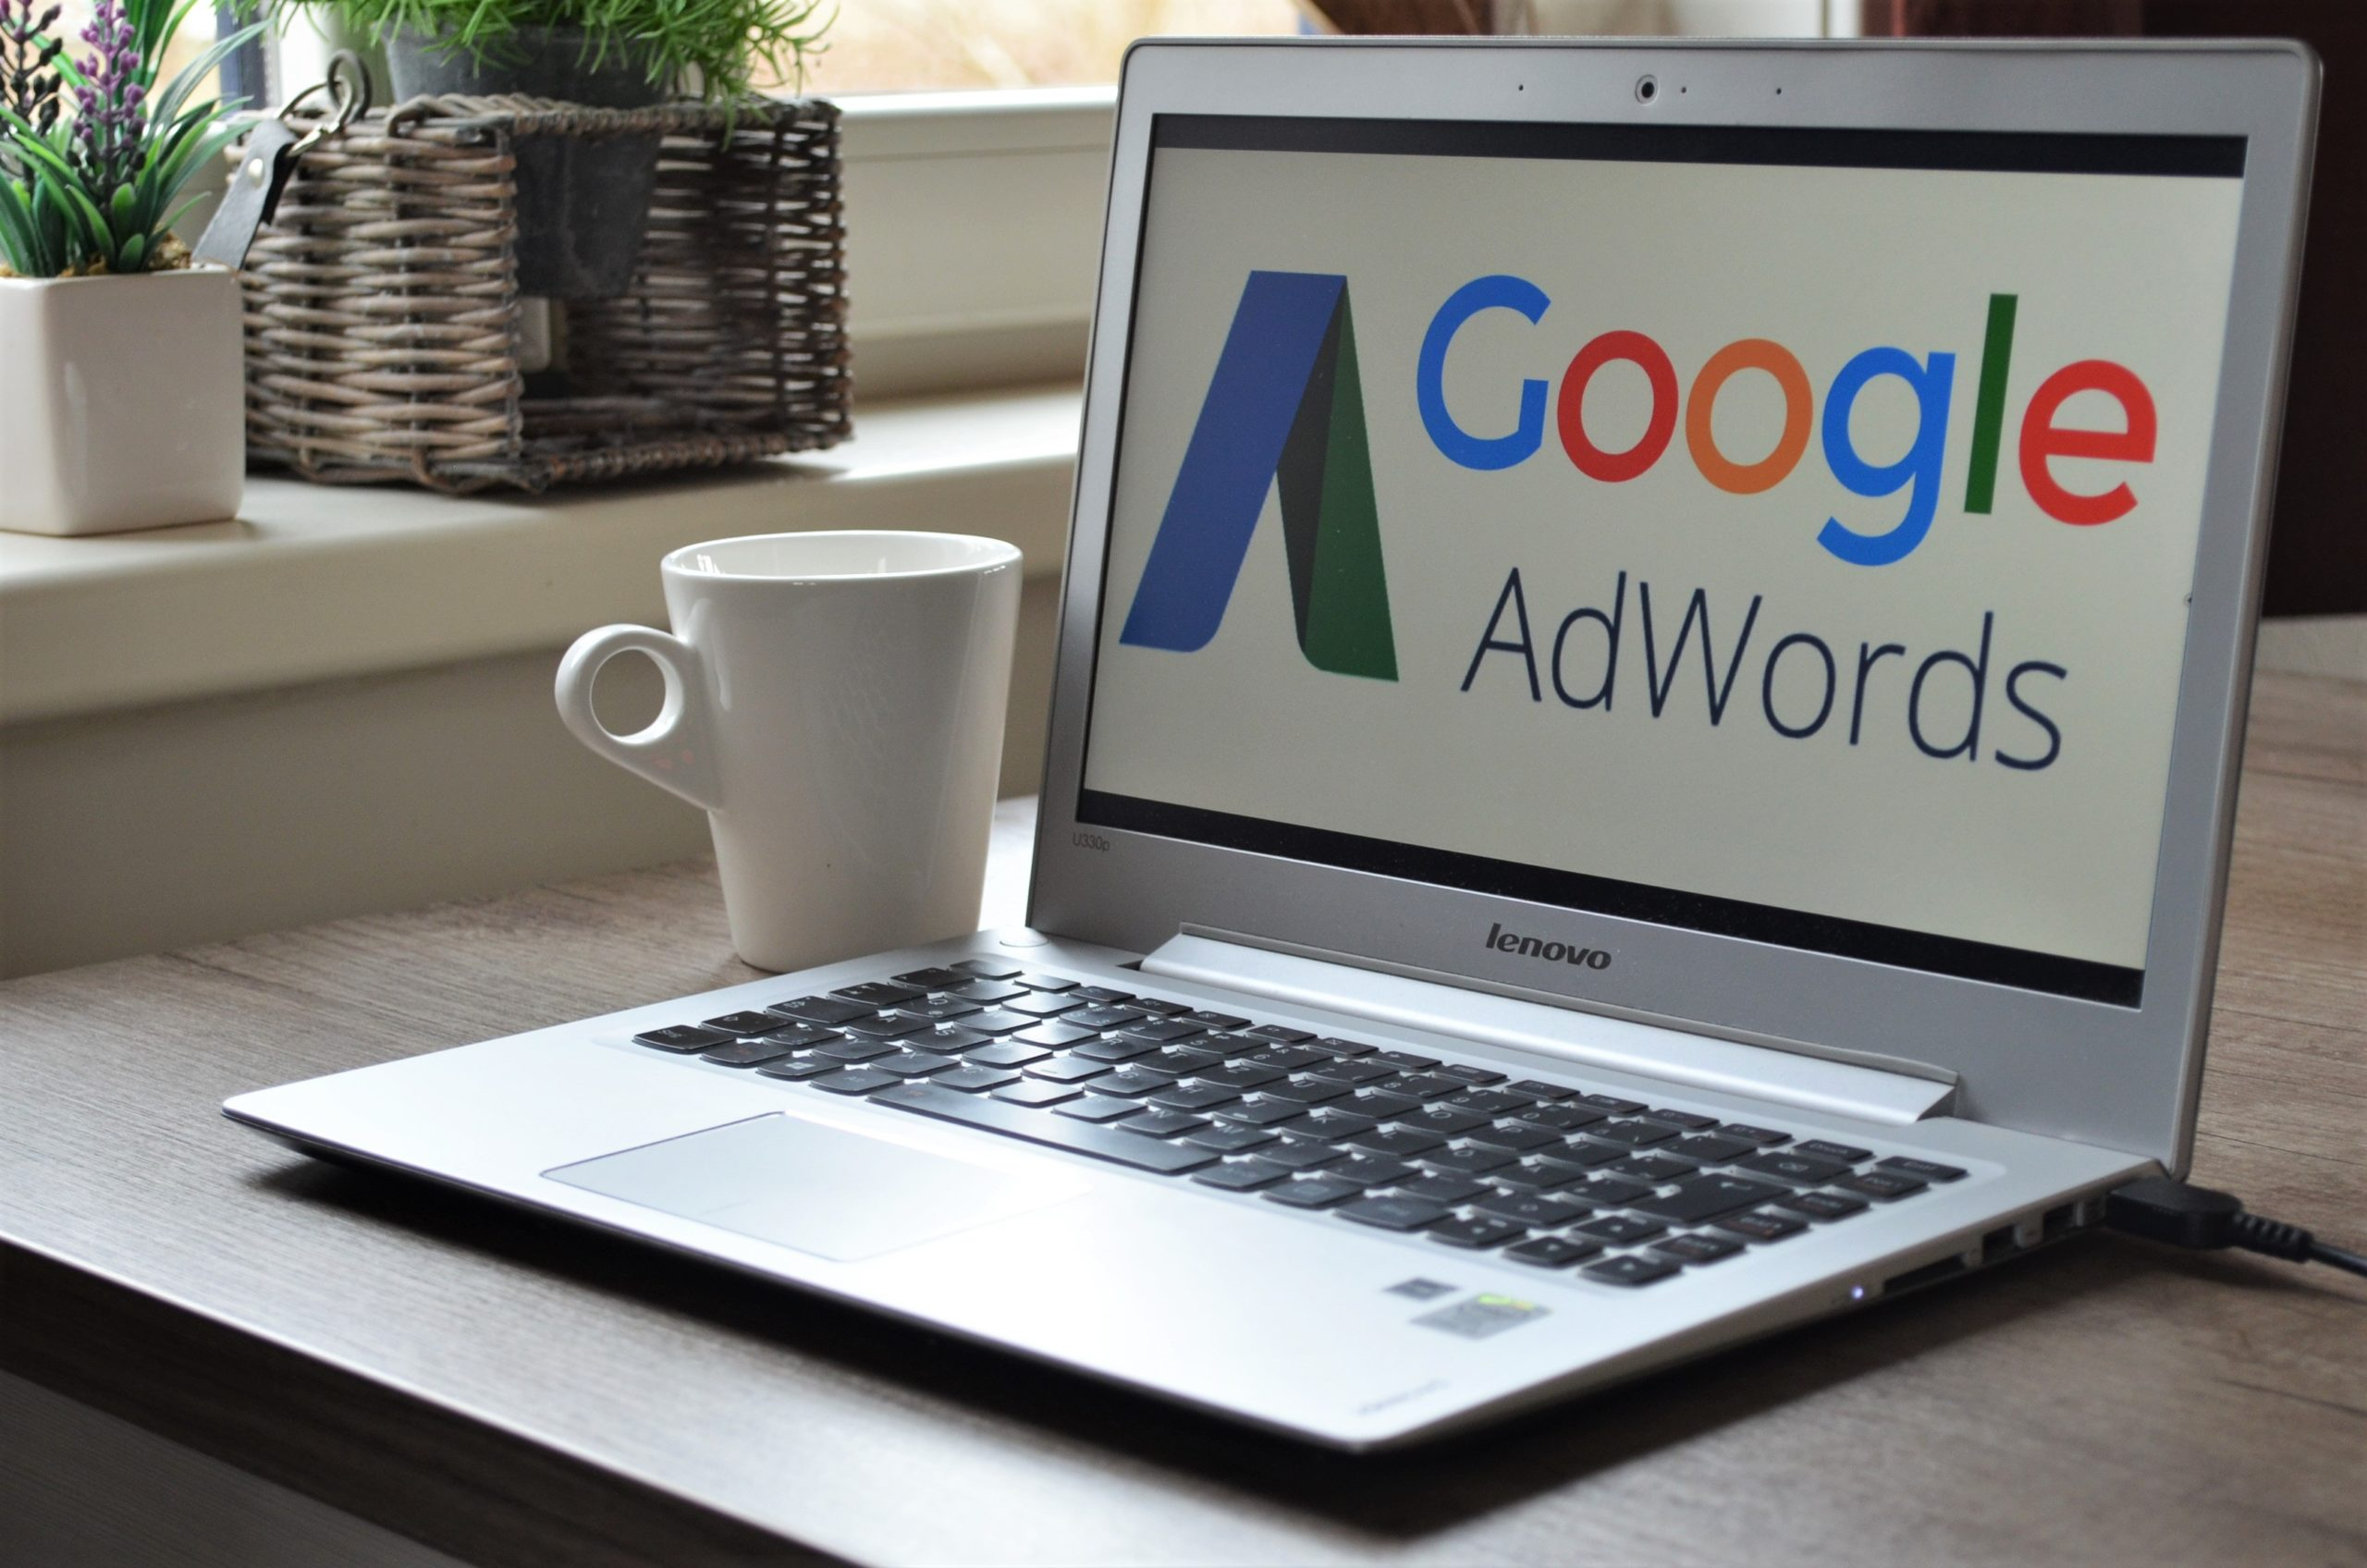 What Are The Key Features Of A Google AdWords Agency?